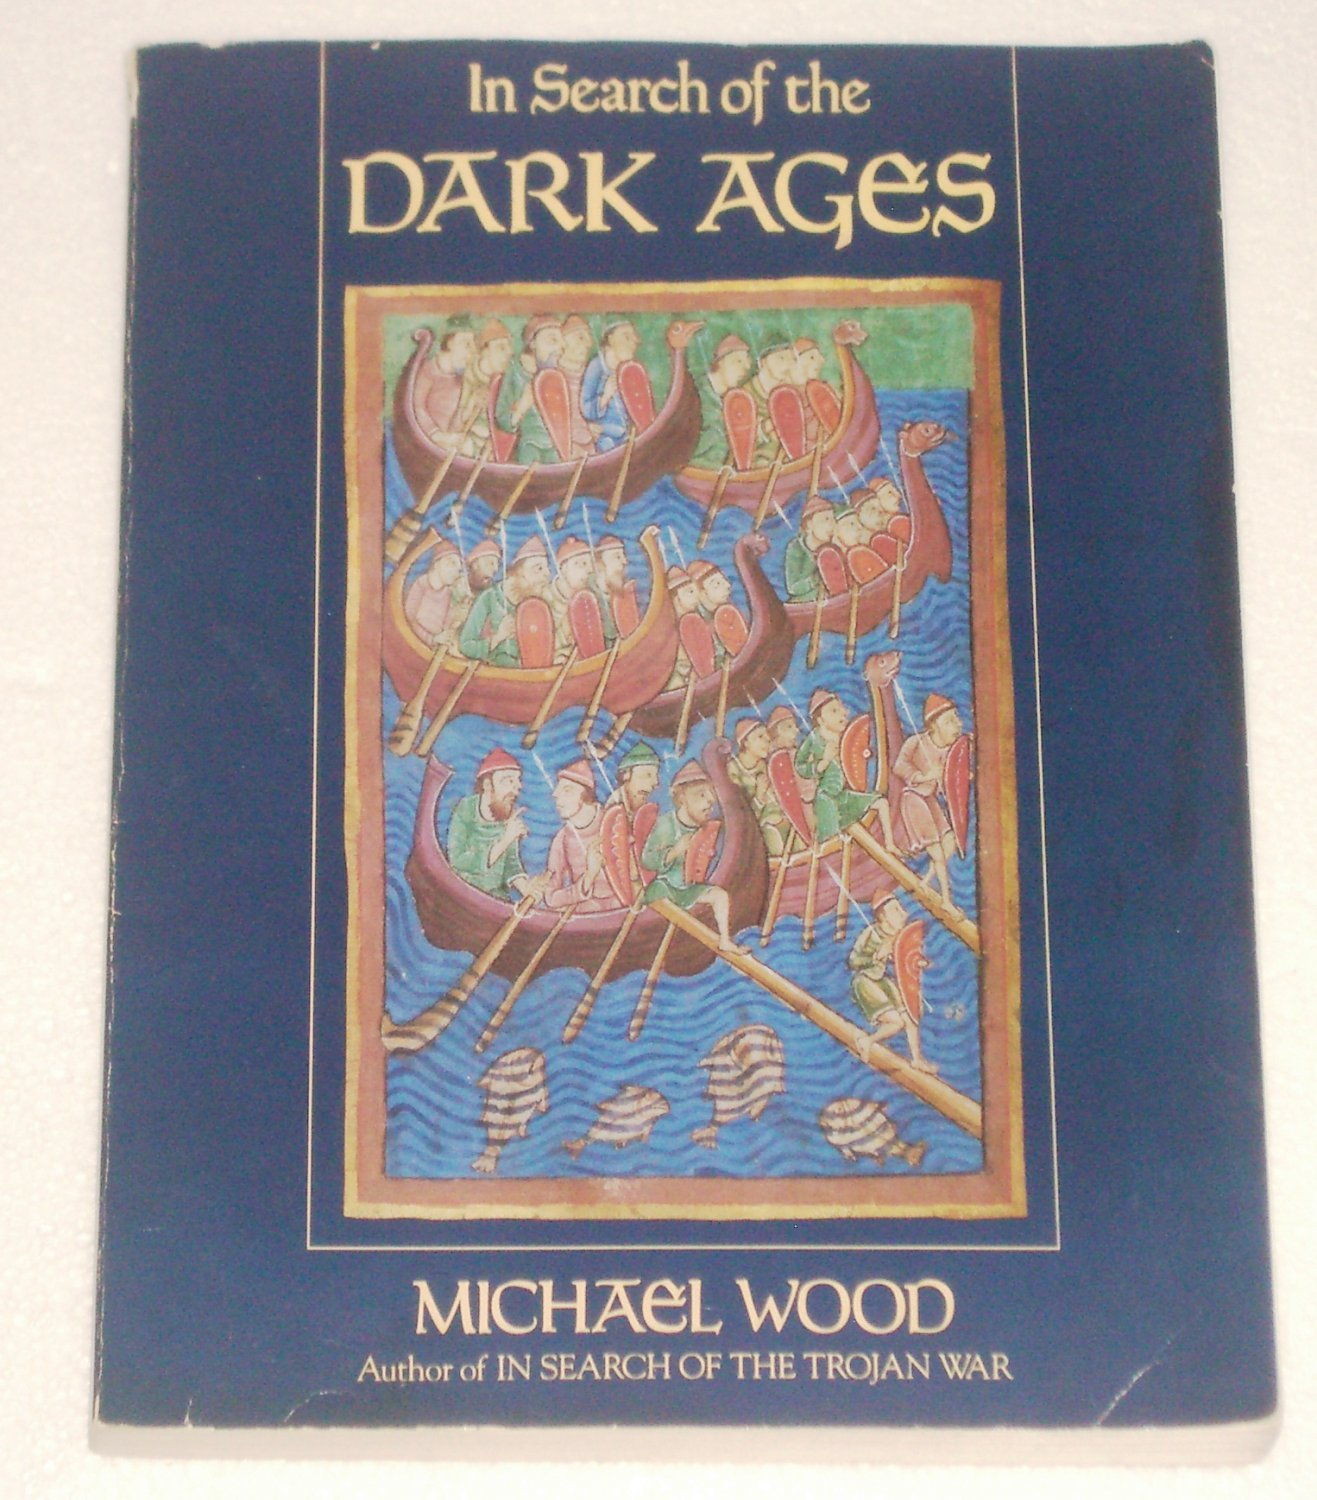 In Search of the Dark Ages by Michael Wood Illustrated